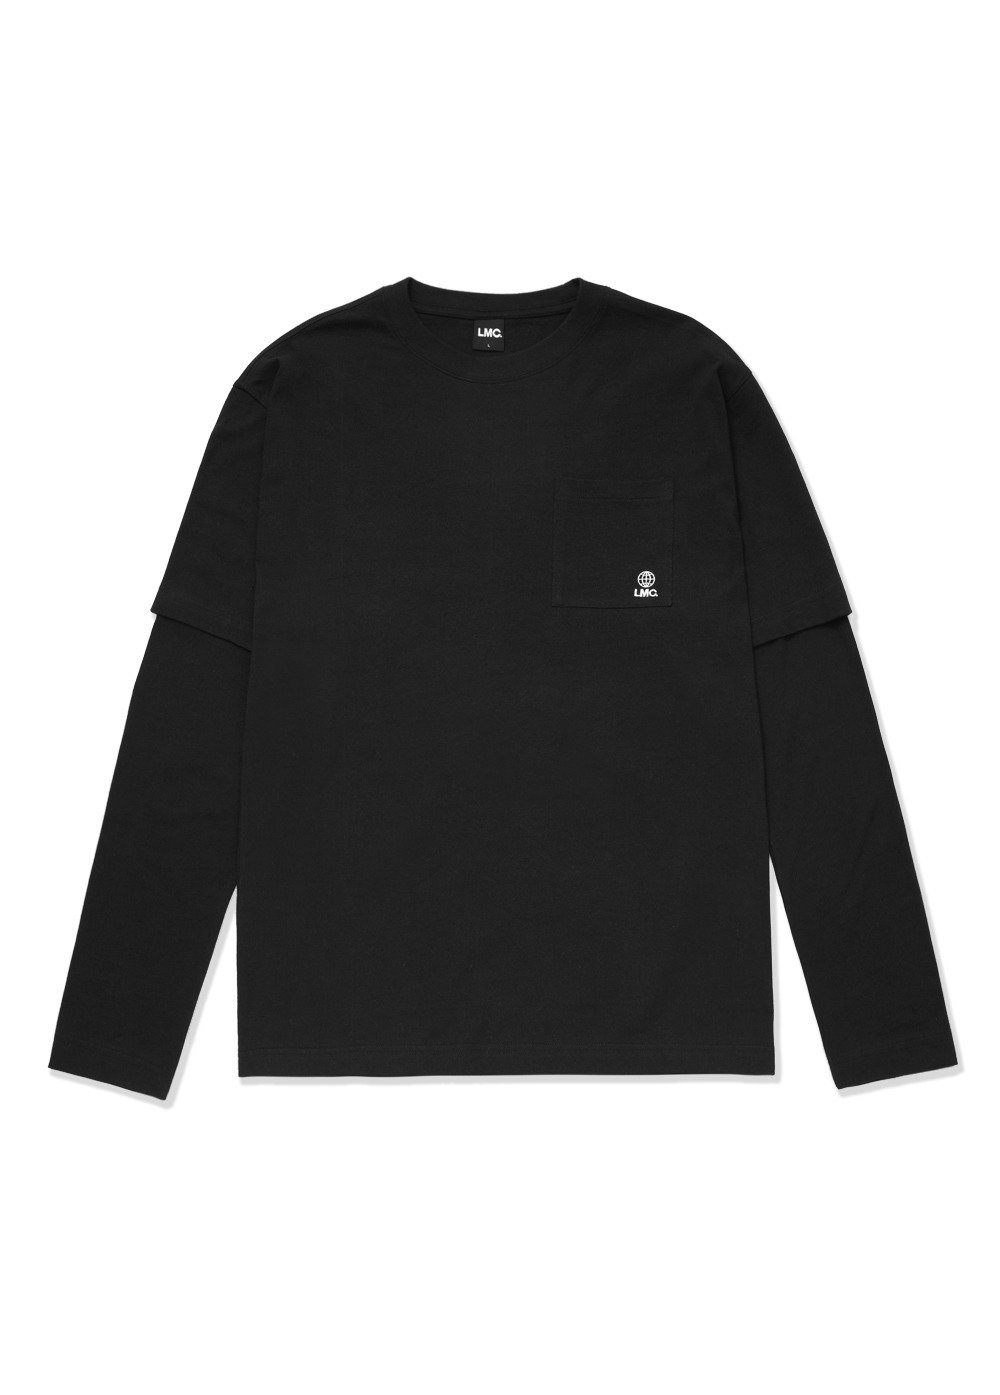 LMC WORKROOM LAYERED LONG SLV TEE black